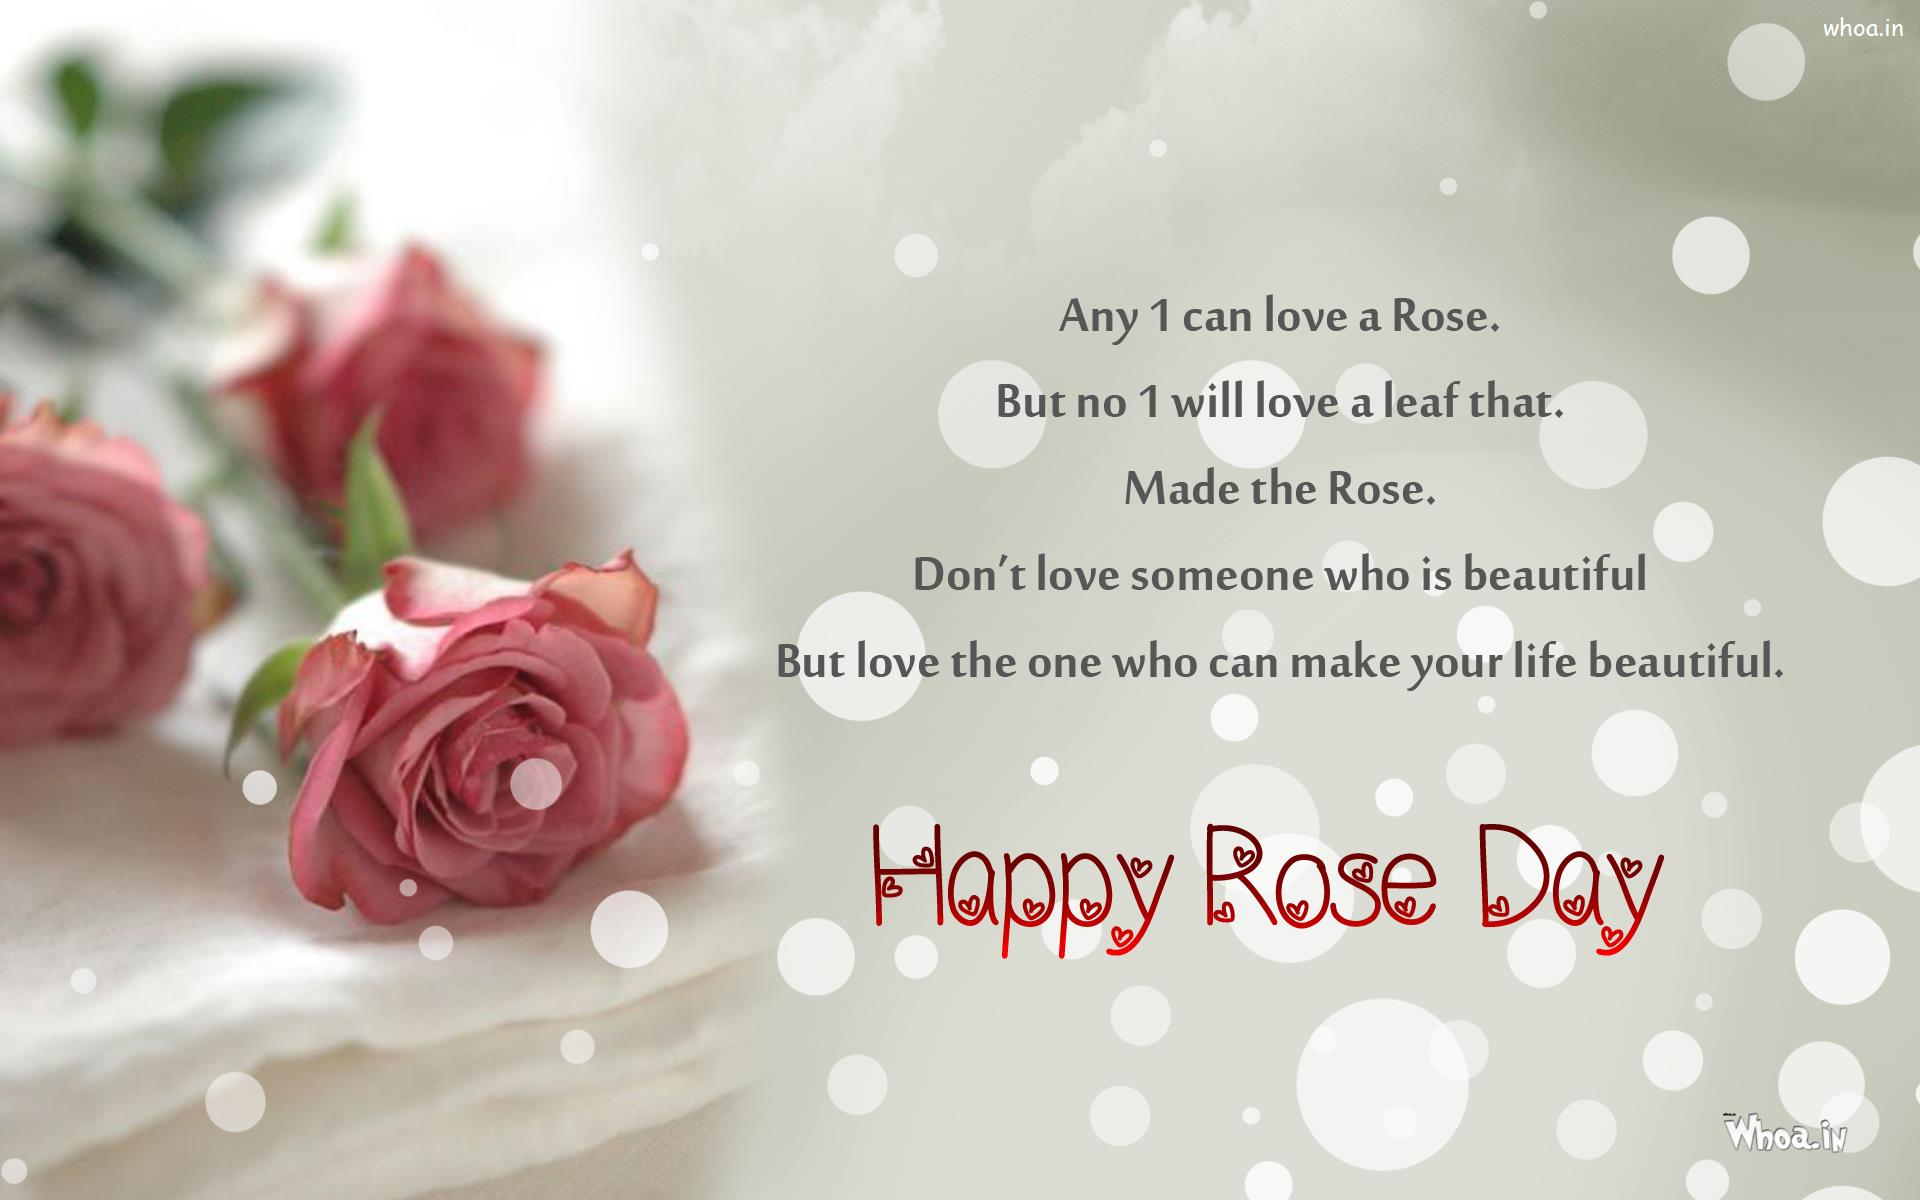 Rose Day Greetings Wallpaper With Red Rose And Golden Ring